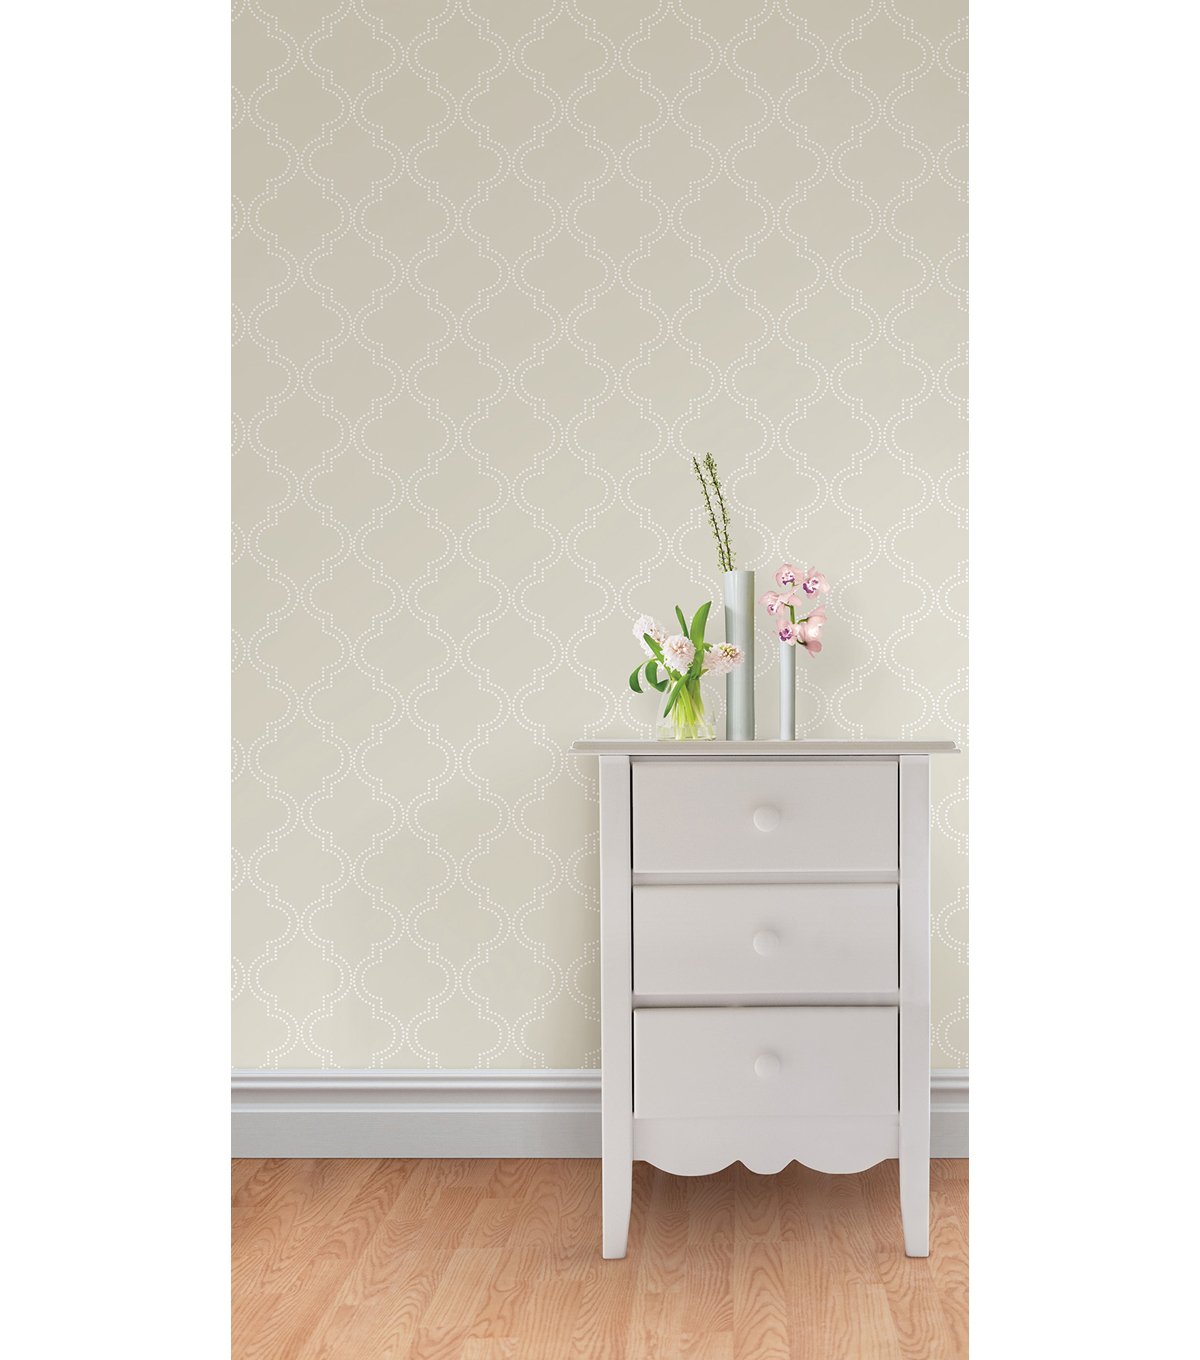 WallPops®NuWallpaper™ Taupe Quatrefoil Peel And Stick Wallpaper